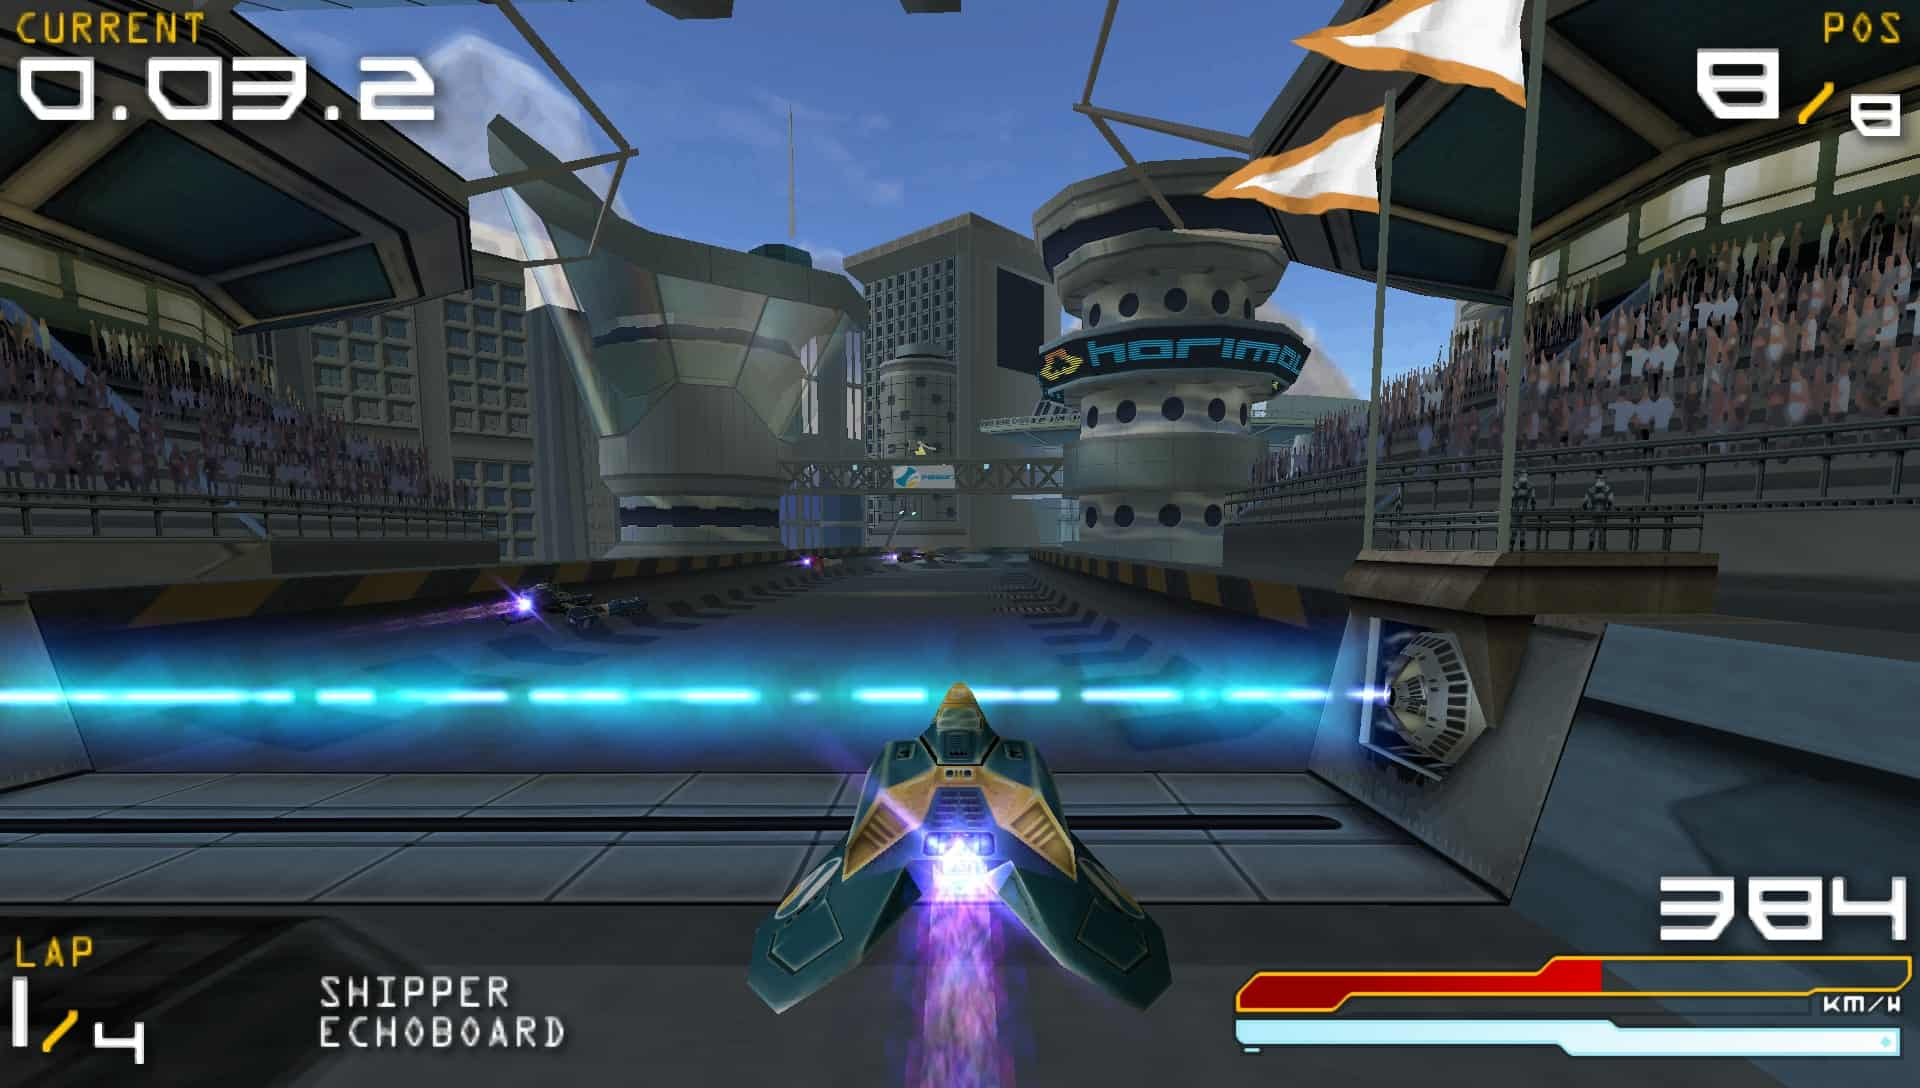 PPSSPP – video game emulator